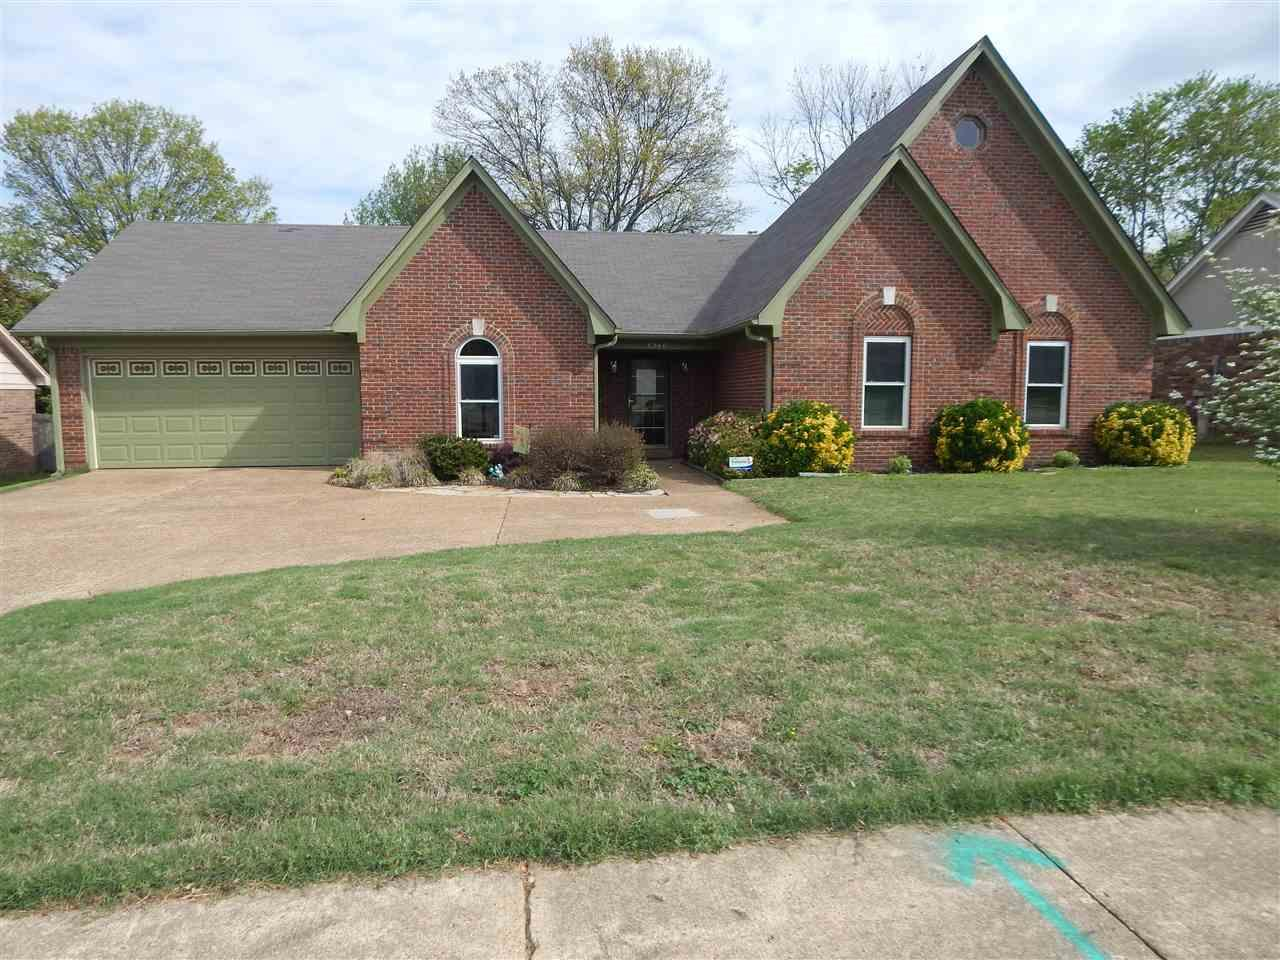 6346 Yale Rd, Bartlett, TN 38134 (#9999650) :: The Wallace Team - RE/MAX On Point